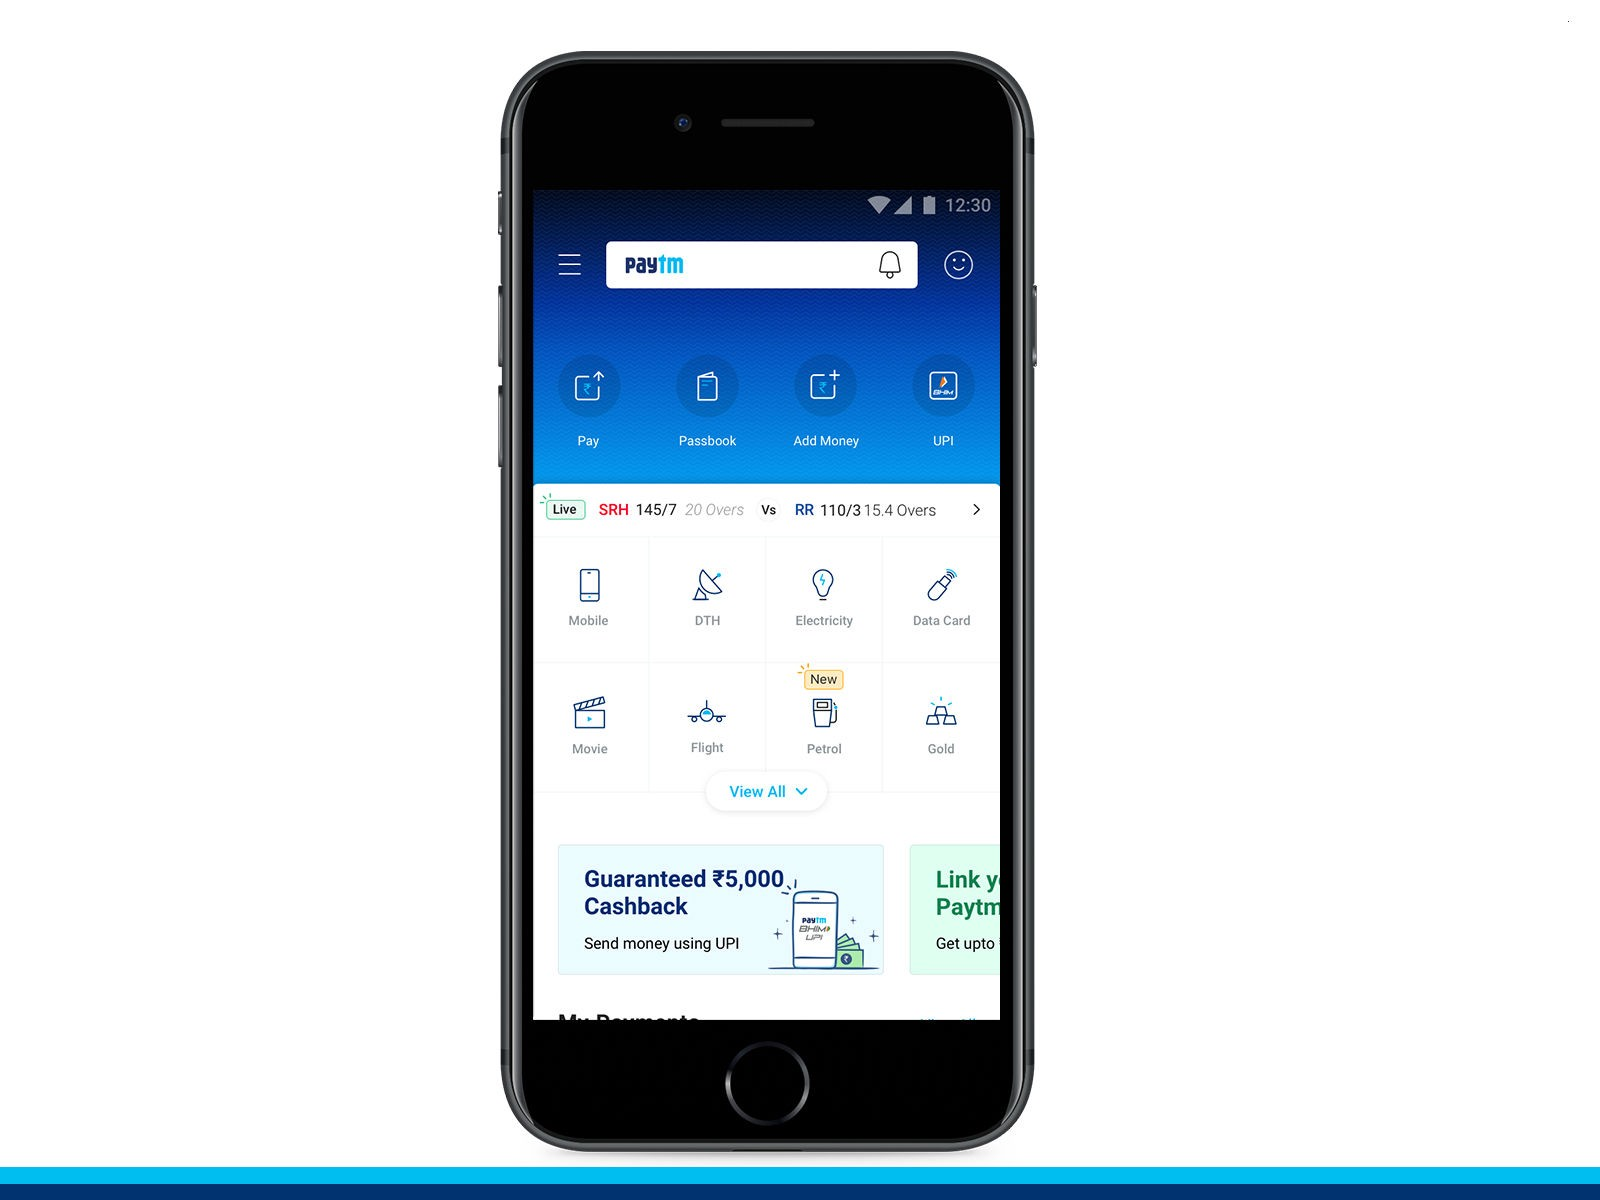 paytm-app-updated-with-new-features-softfeed